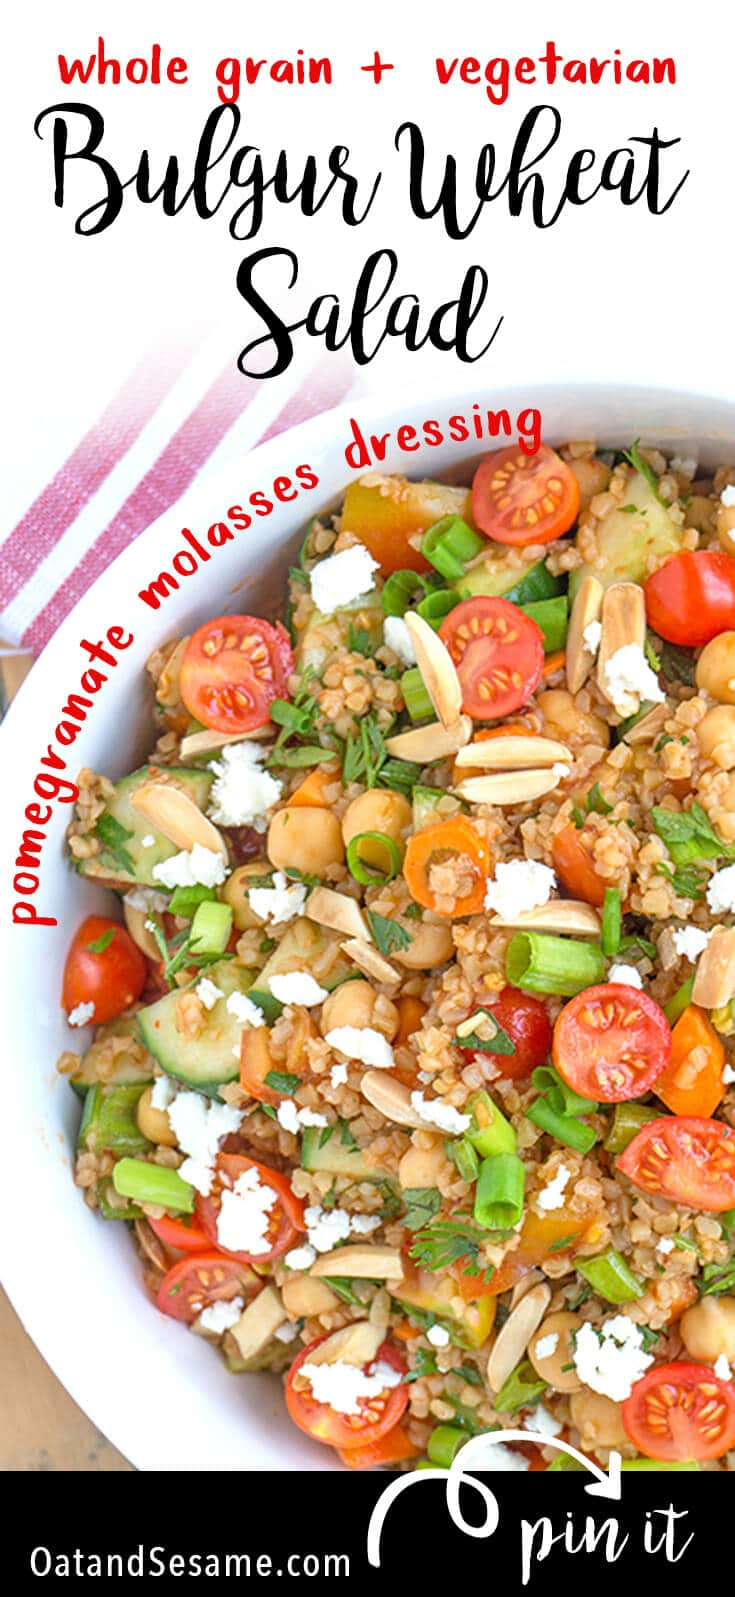 Turkish Bulgur Wheat Salad with Tomatoes and Cucumbers - fresh, quick and healthy - tossed with a yummy pomegranate molasses dressing! | #SALAD | #VEGETARIAN | #WHOLEGRAIN | #Recipes at OatandSesame.com